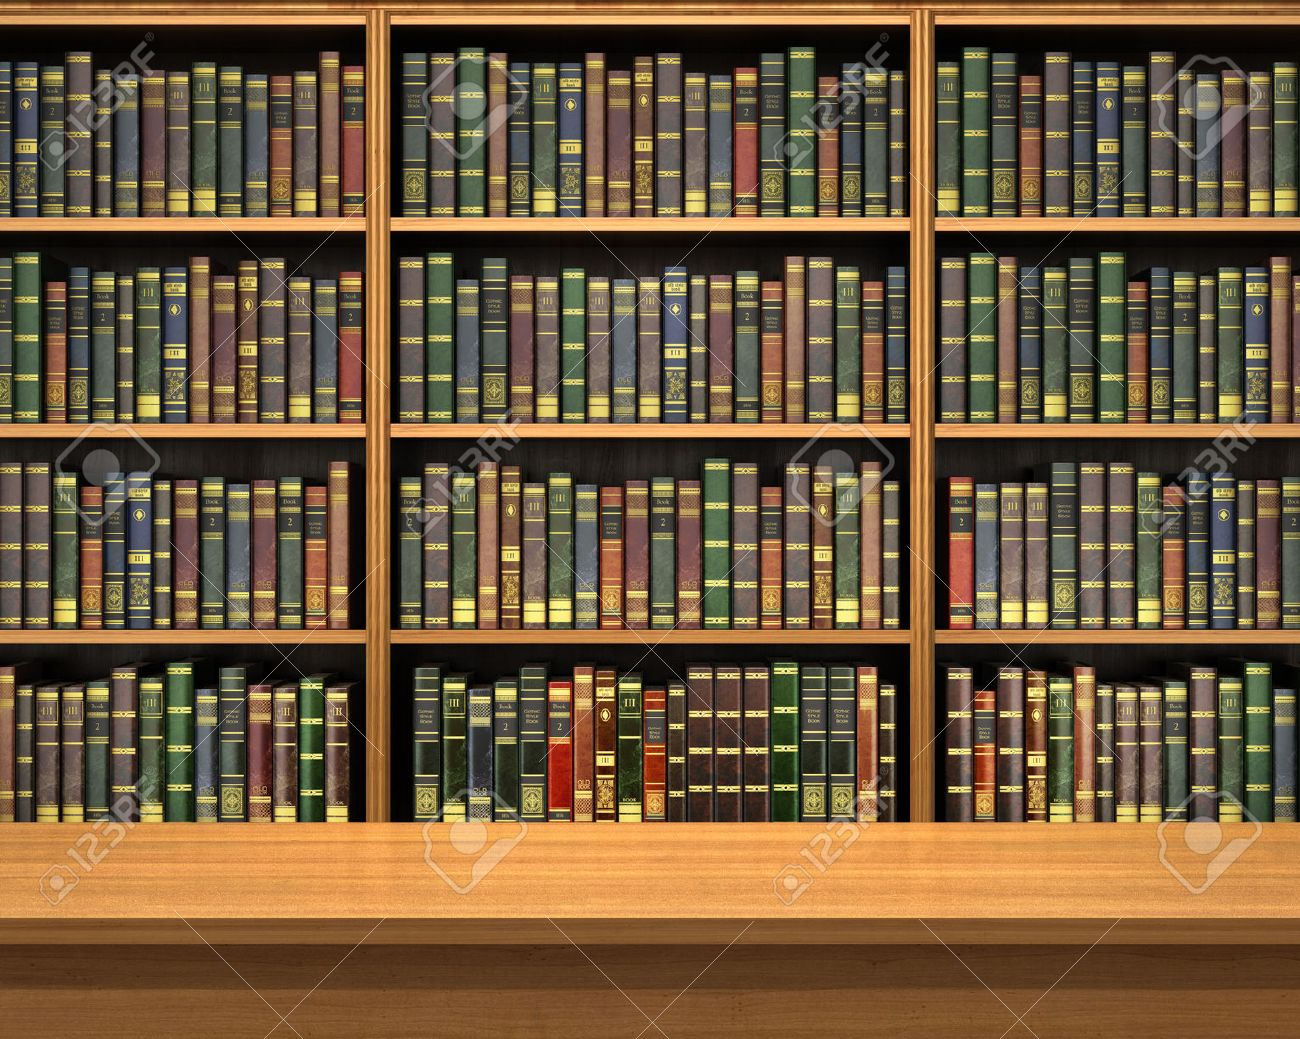 Table On Background Of Bookshelf Full Books Old Library Stock